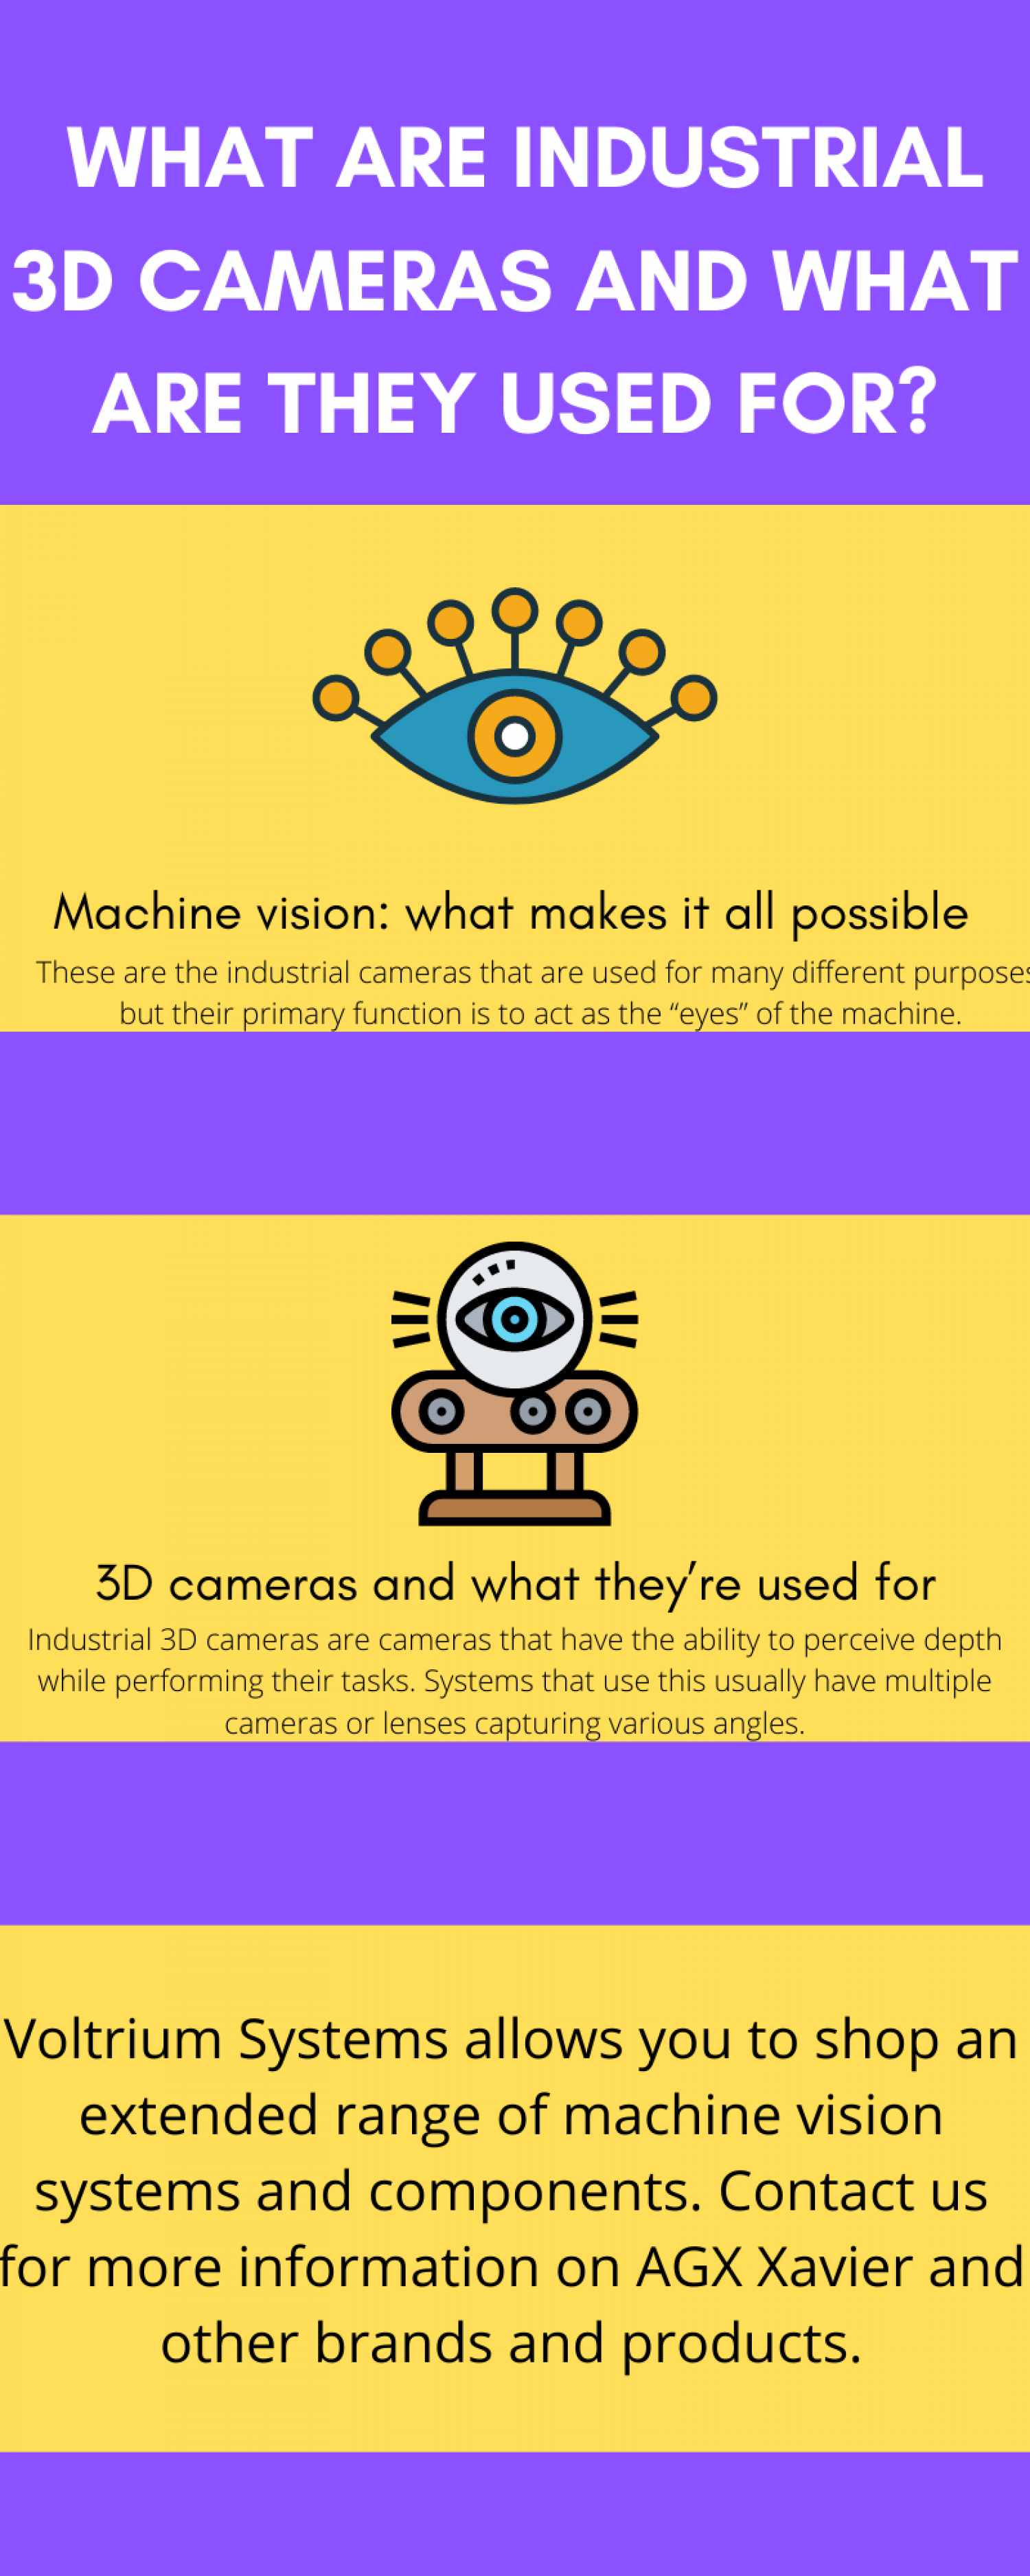 What are industrial 3D cameras and what are they used for? Infographic